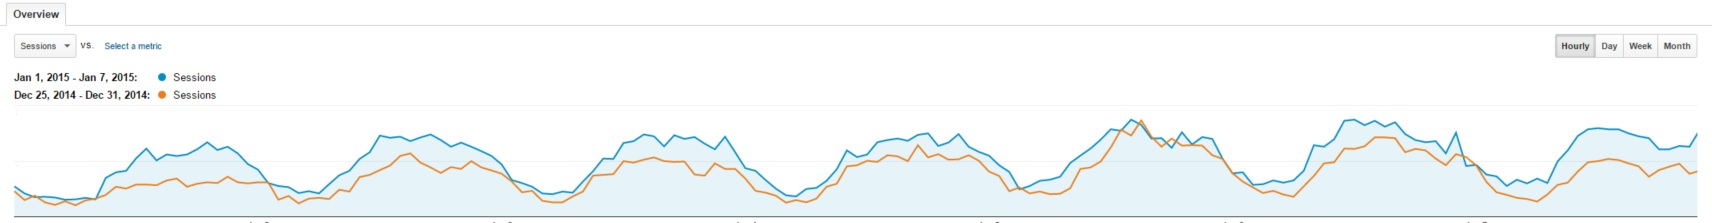 FranchiseHelp Organic Traffic January 2015 vs. December 2014